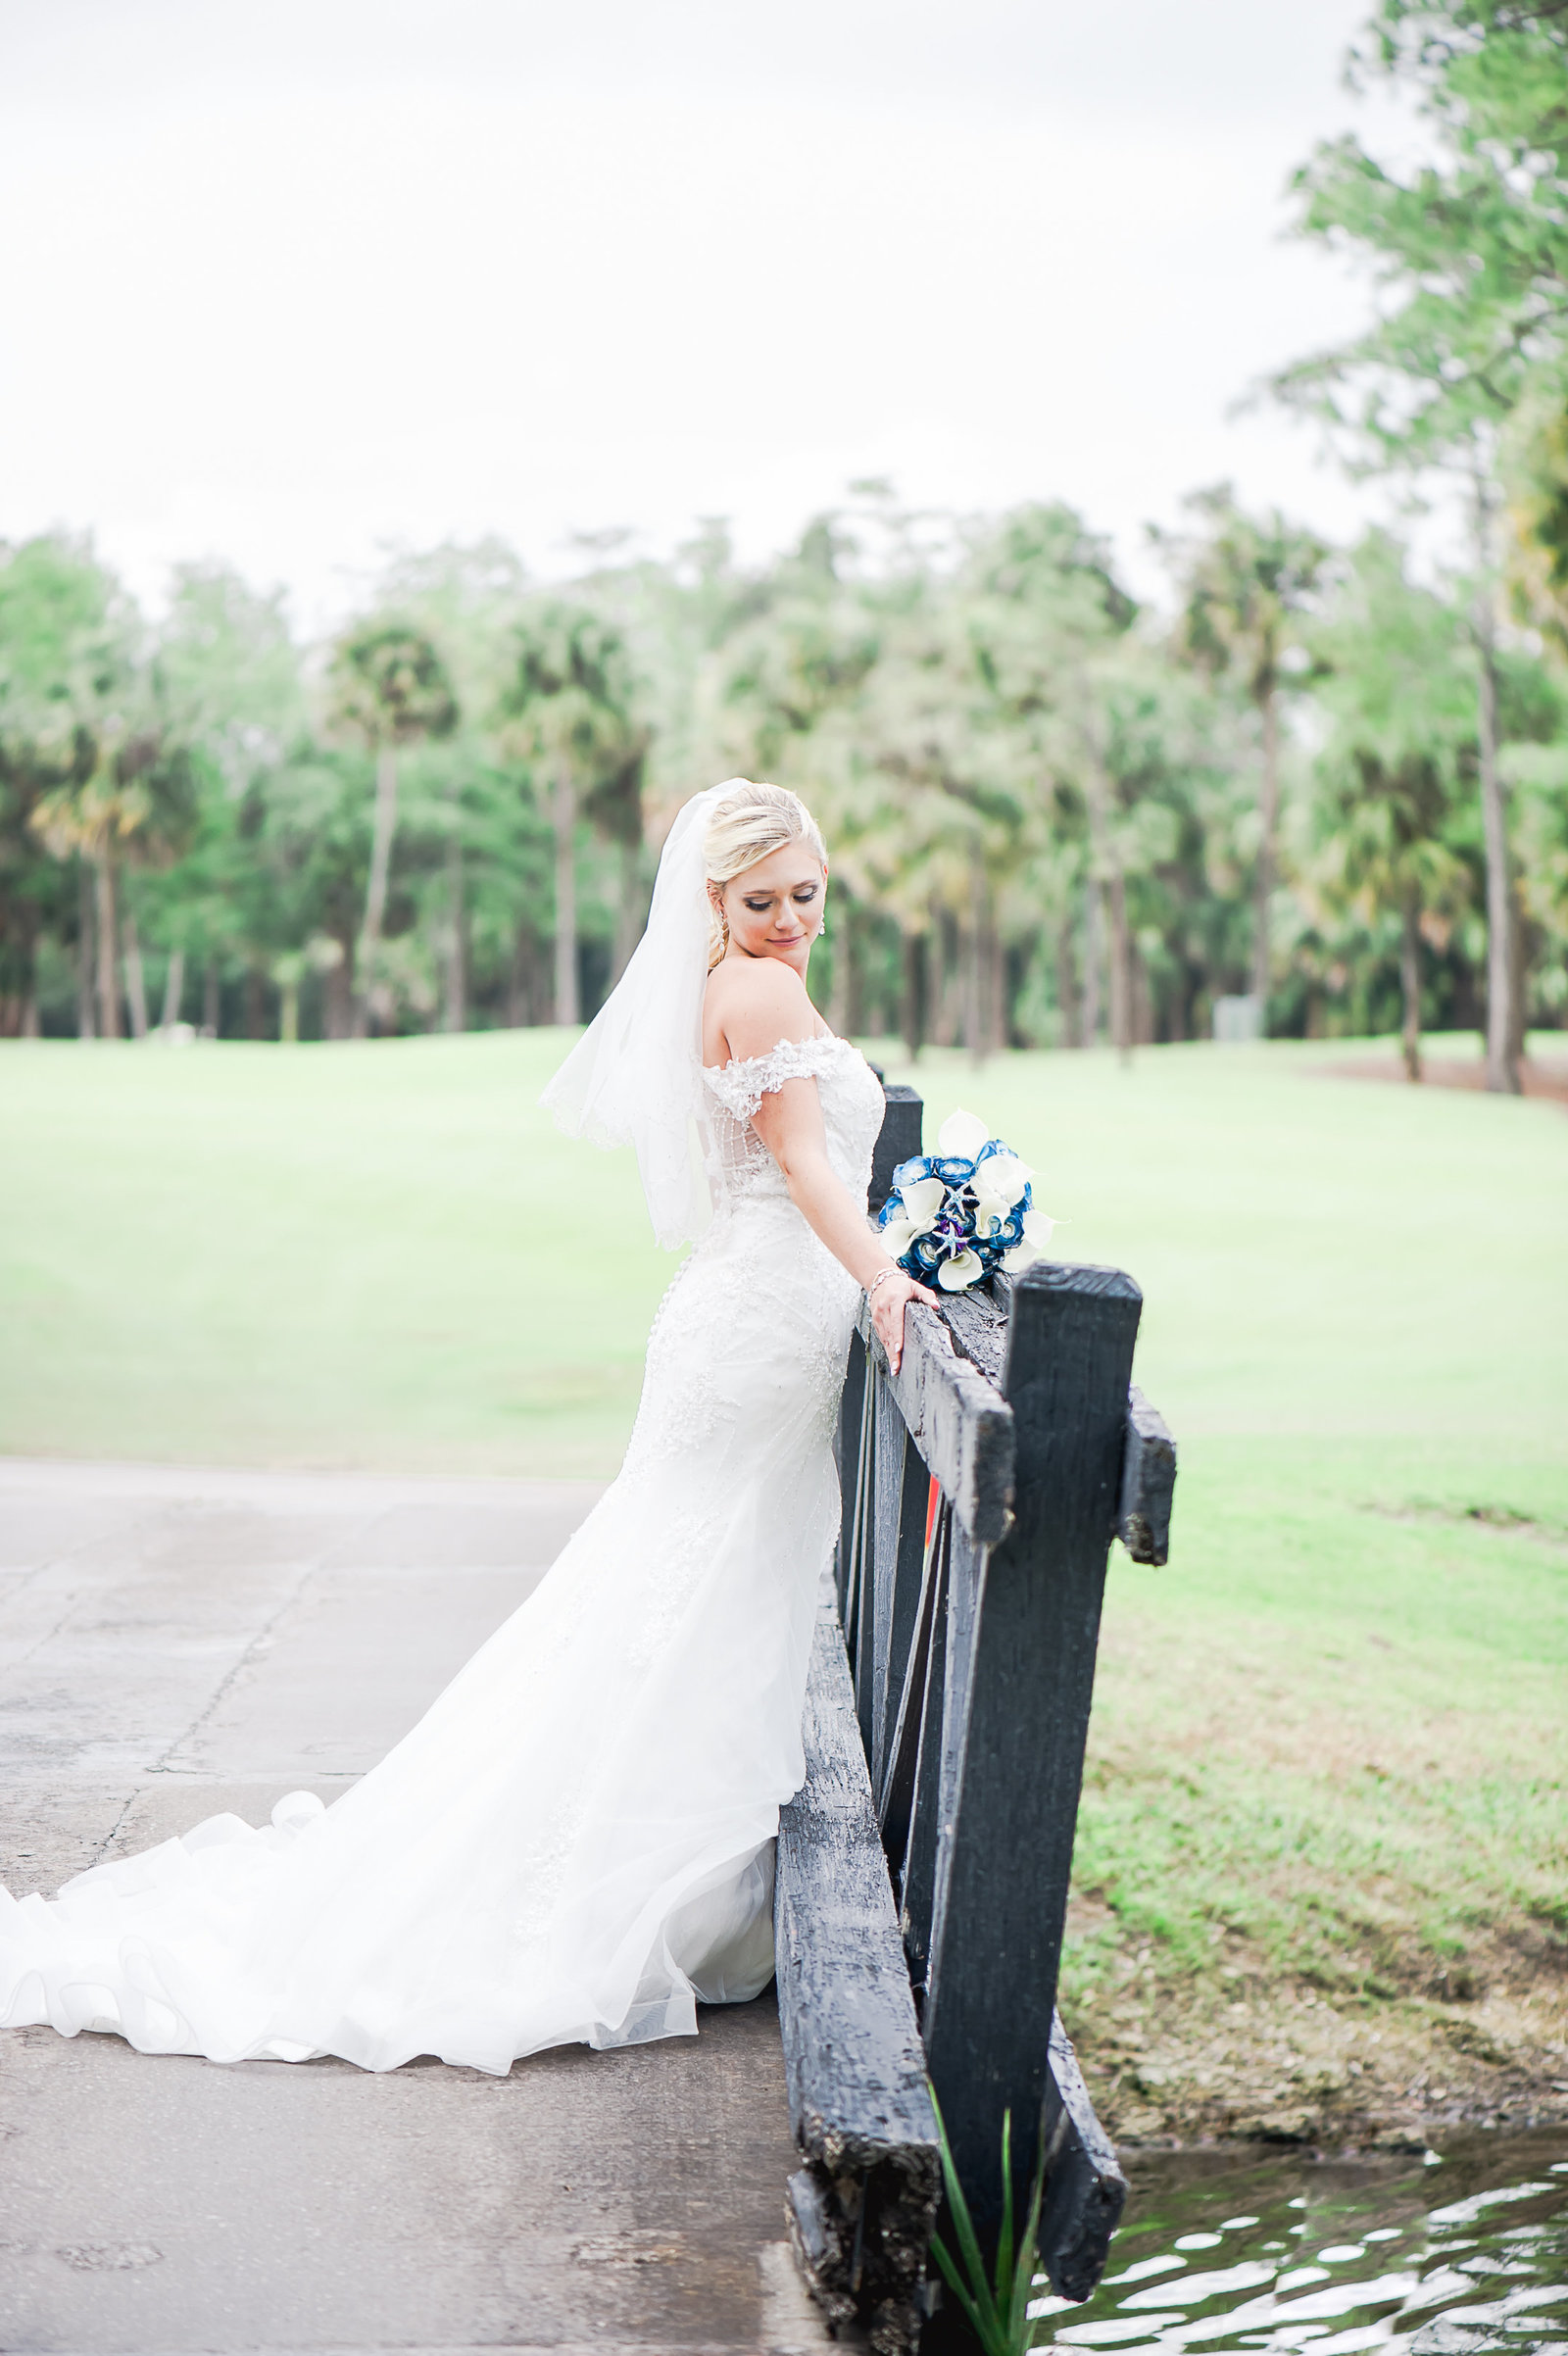 Sexy Bride - Myacoo Country Club Wedding - Palm Beach Wedding Photography by Palm Beach Photography, Inc.